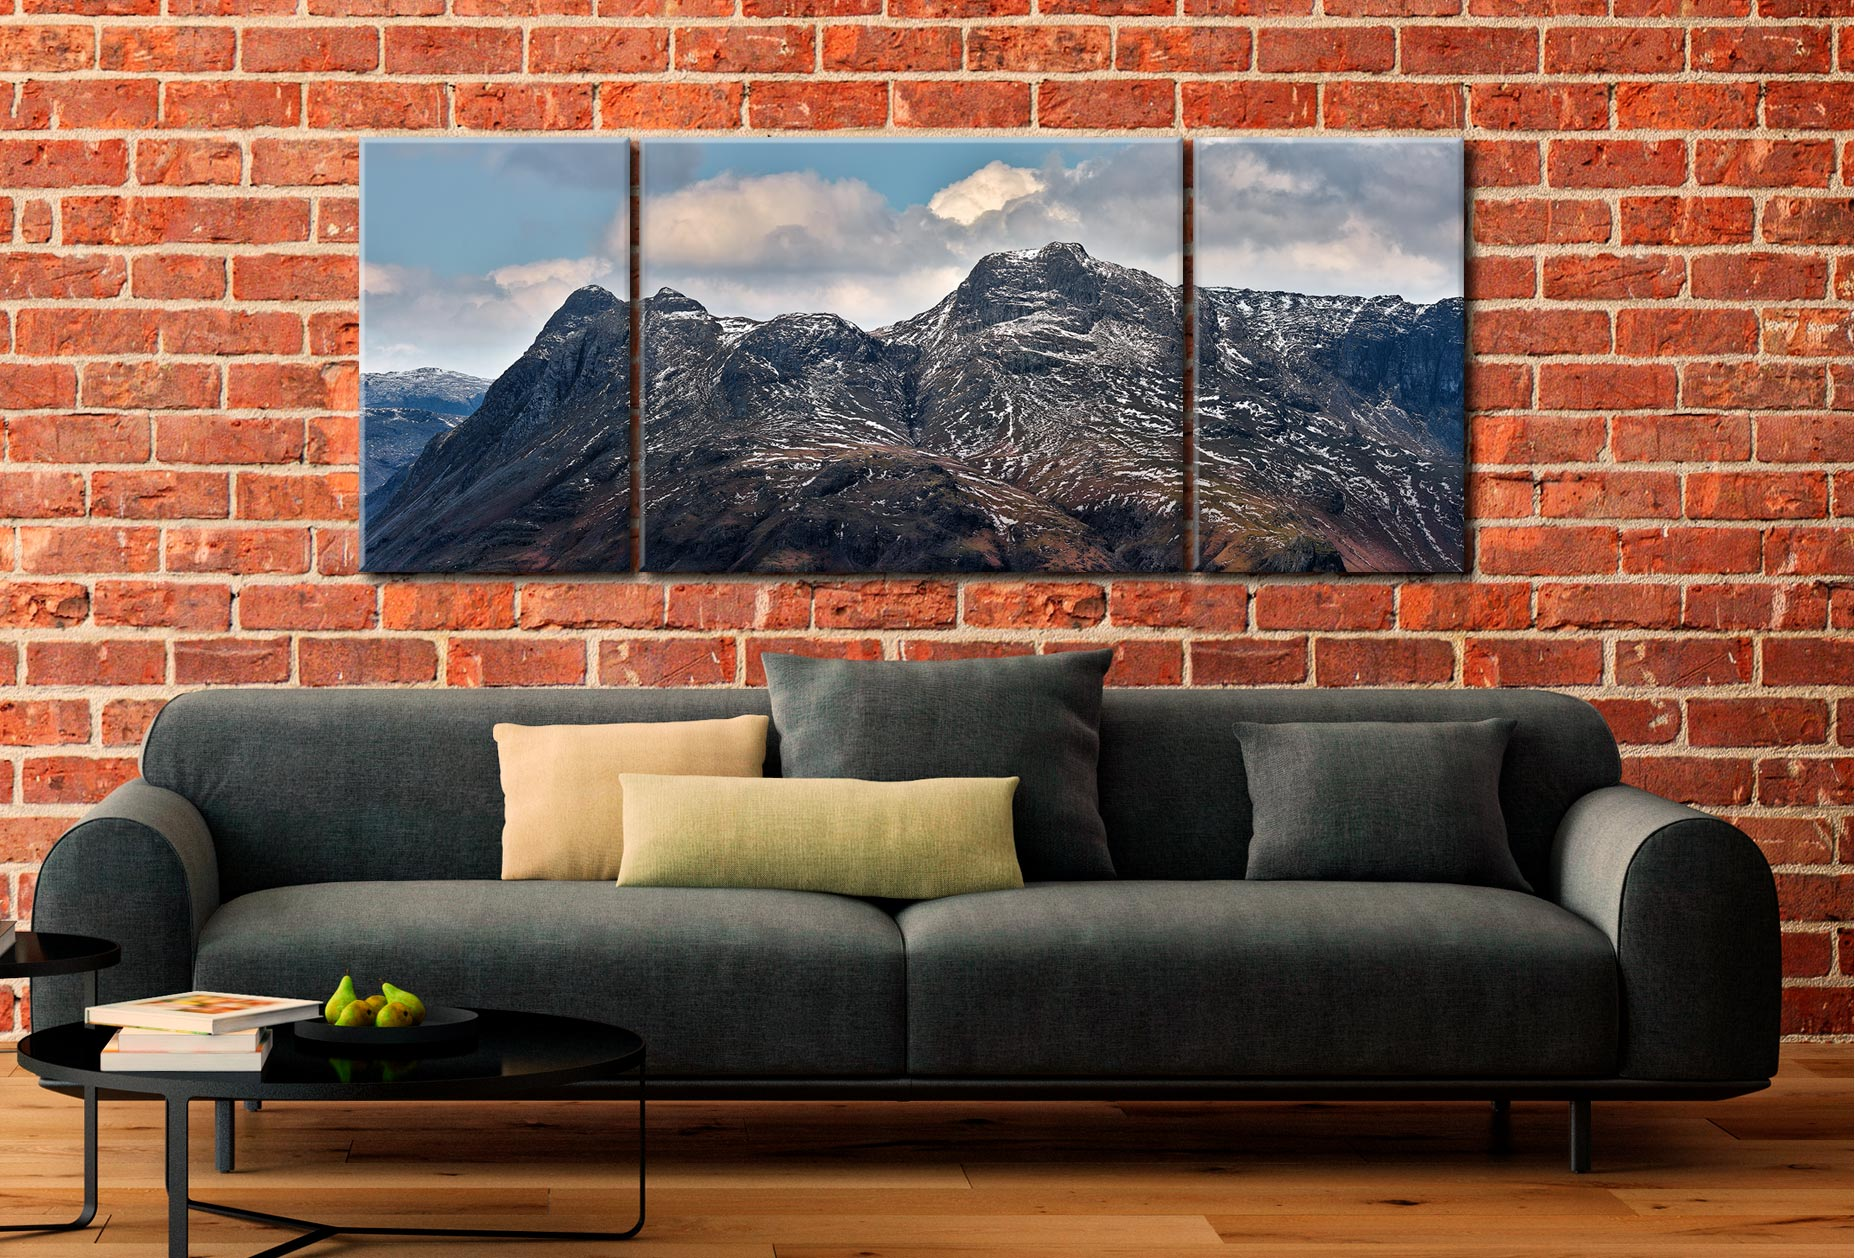 Late Snow on Langdale Pikes - 3 Panel Wide Mid Canvas on Wall